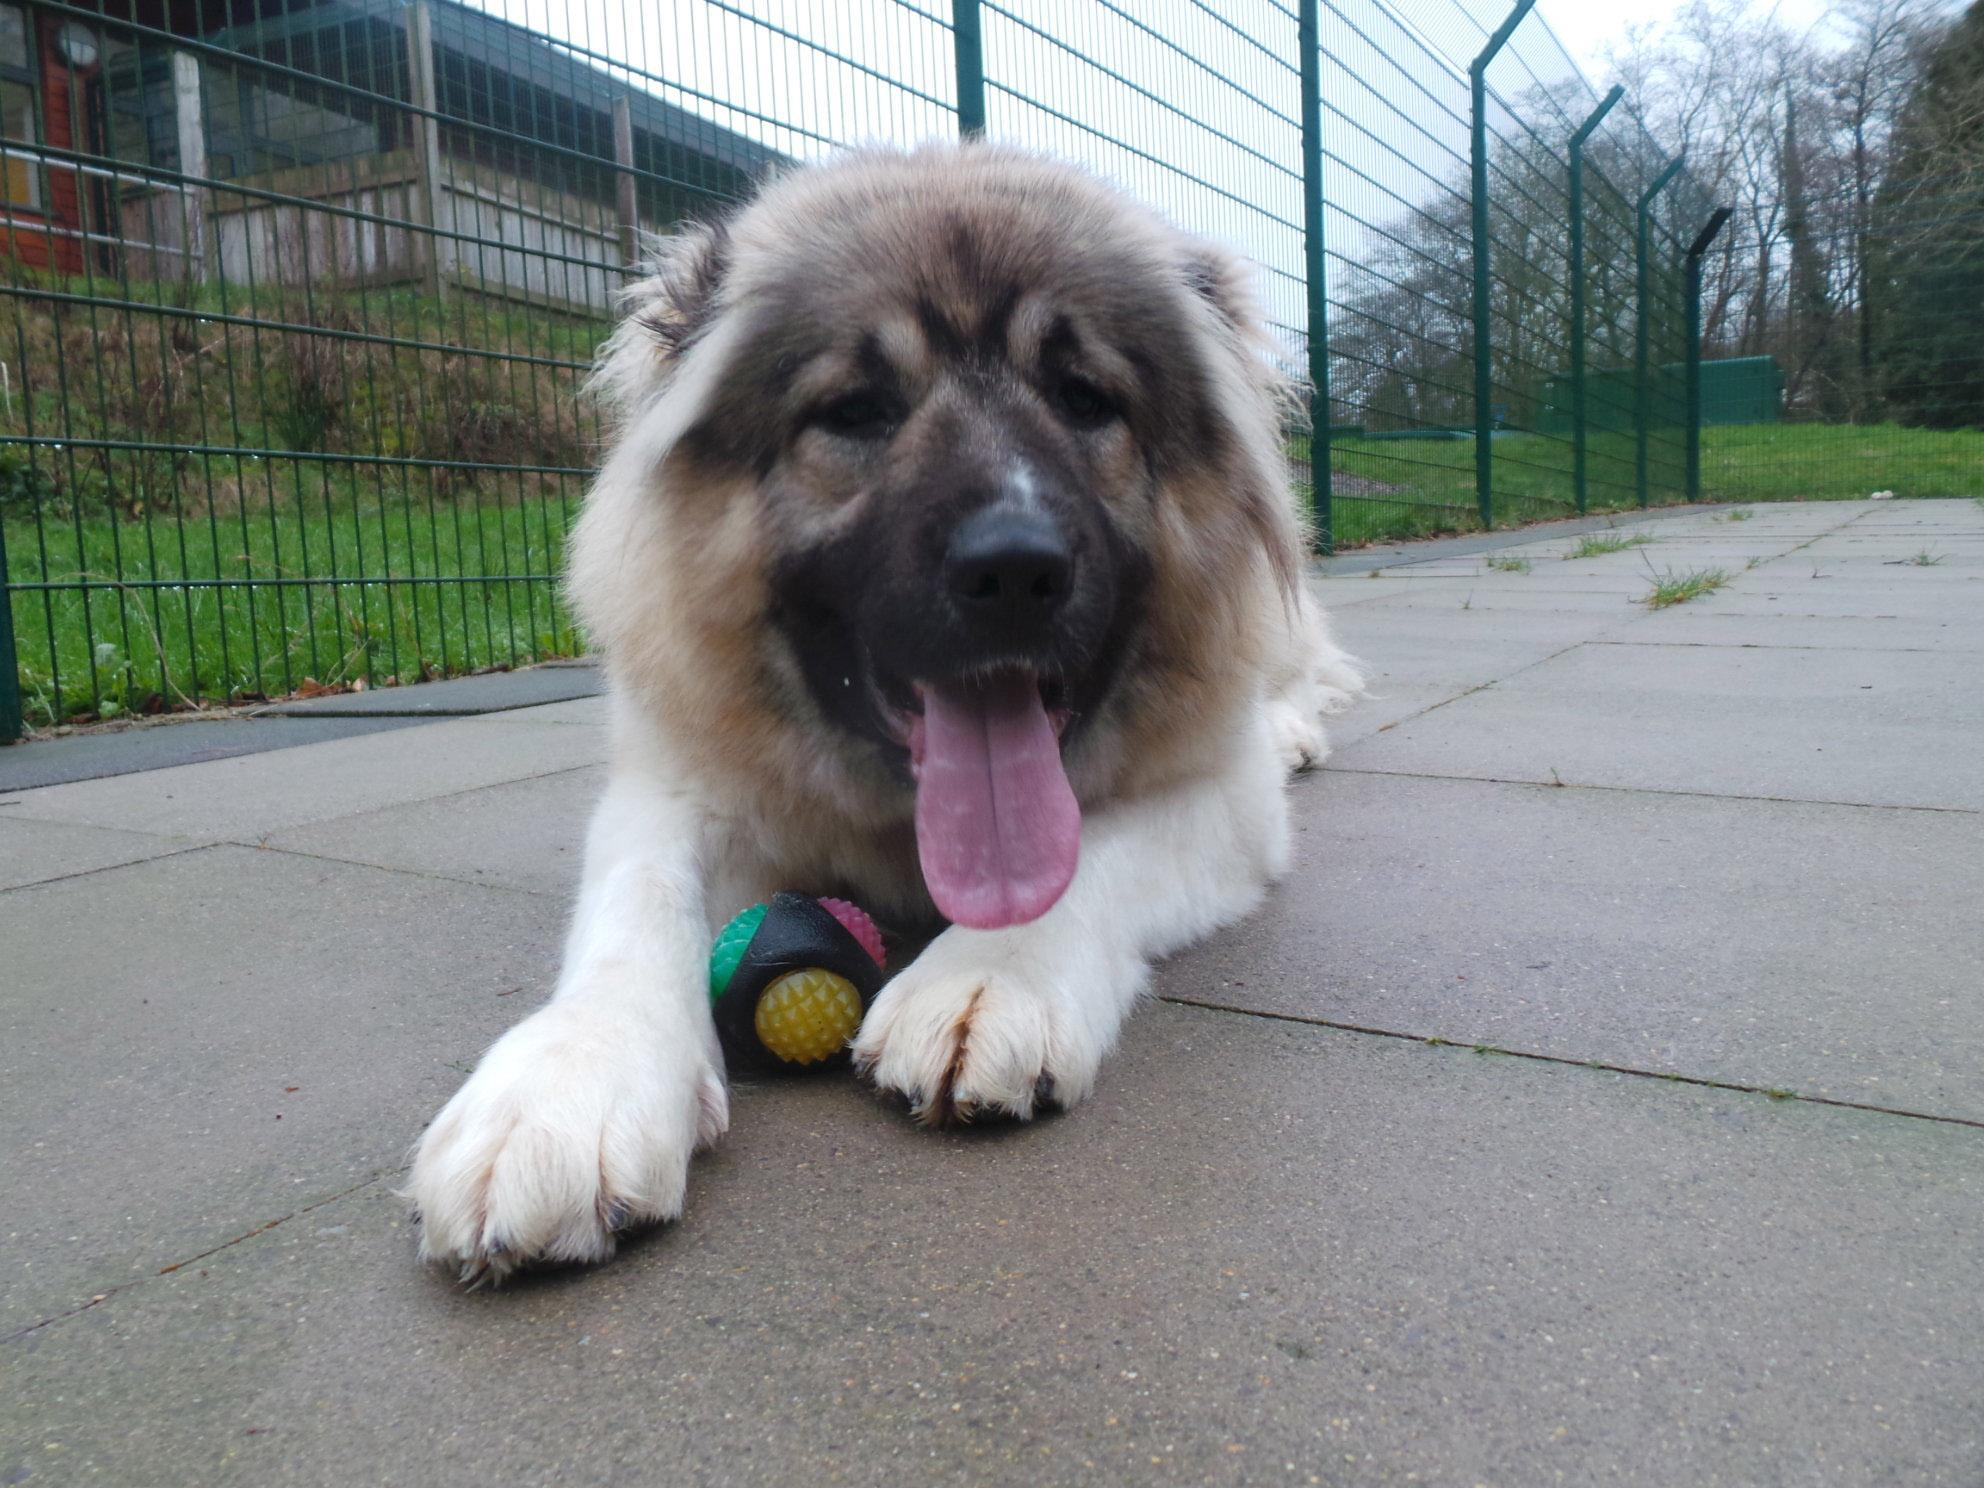 Britain's biggest rescue dog 'could grow to the size of a tiger'